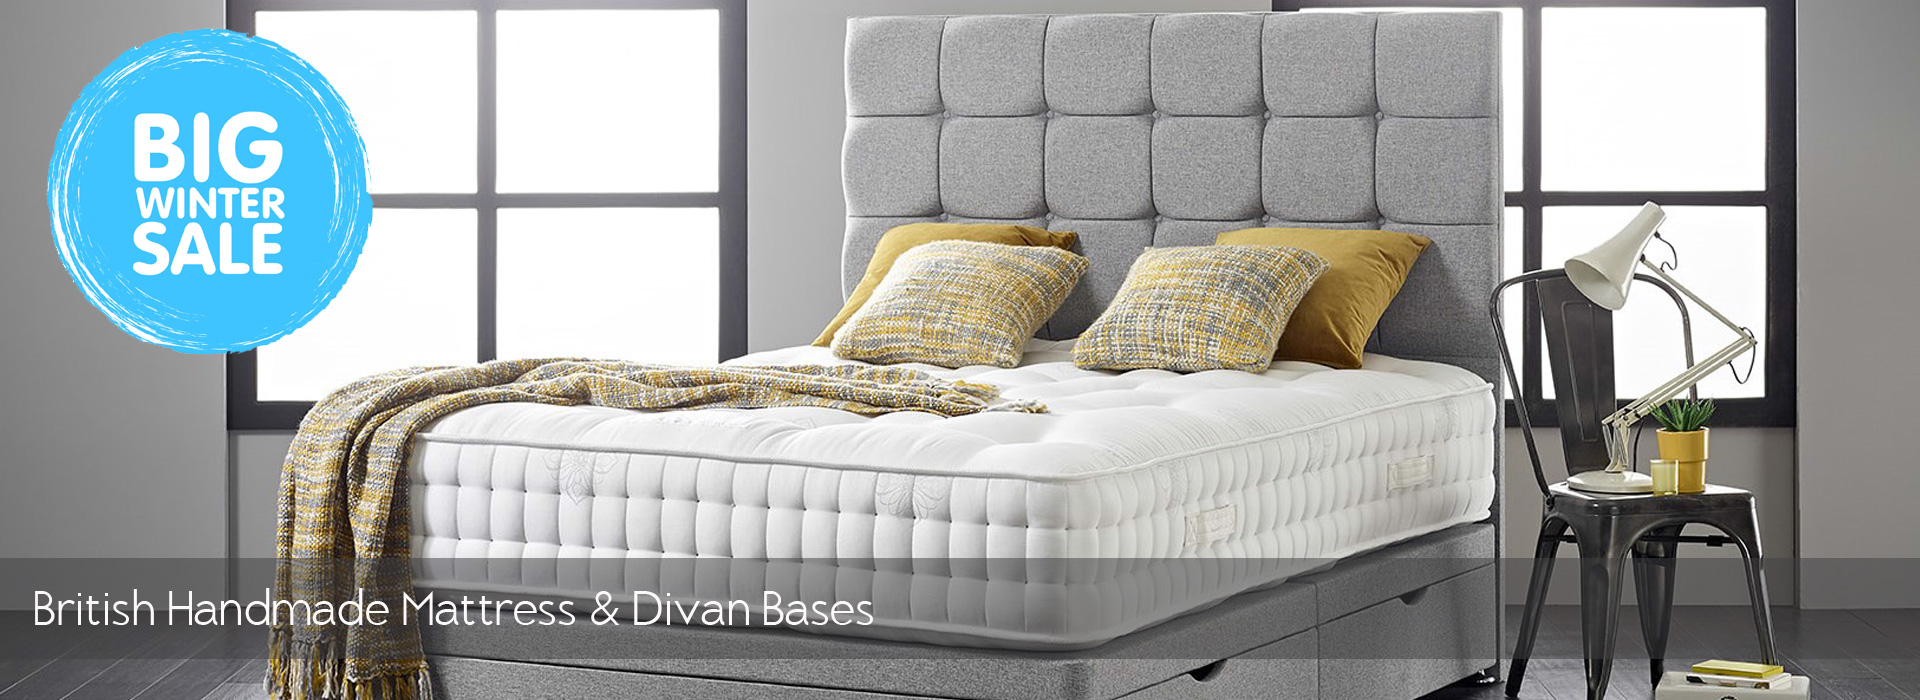 XL-Mattress-&-Dvians.jpg